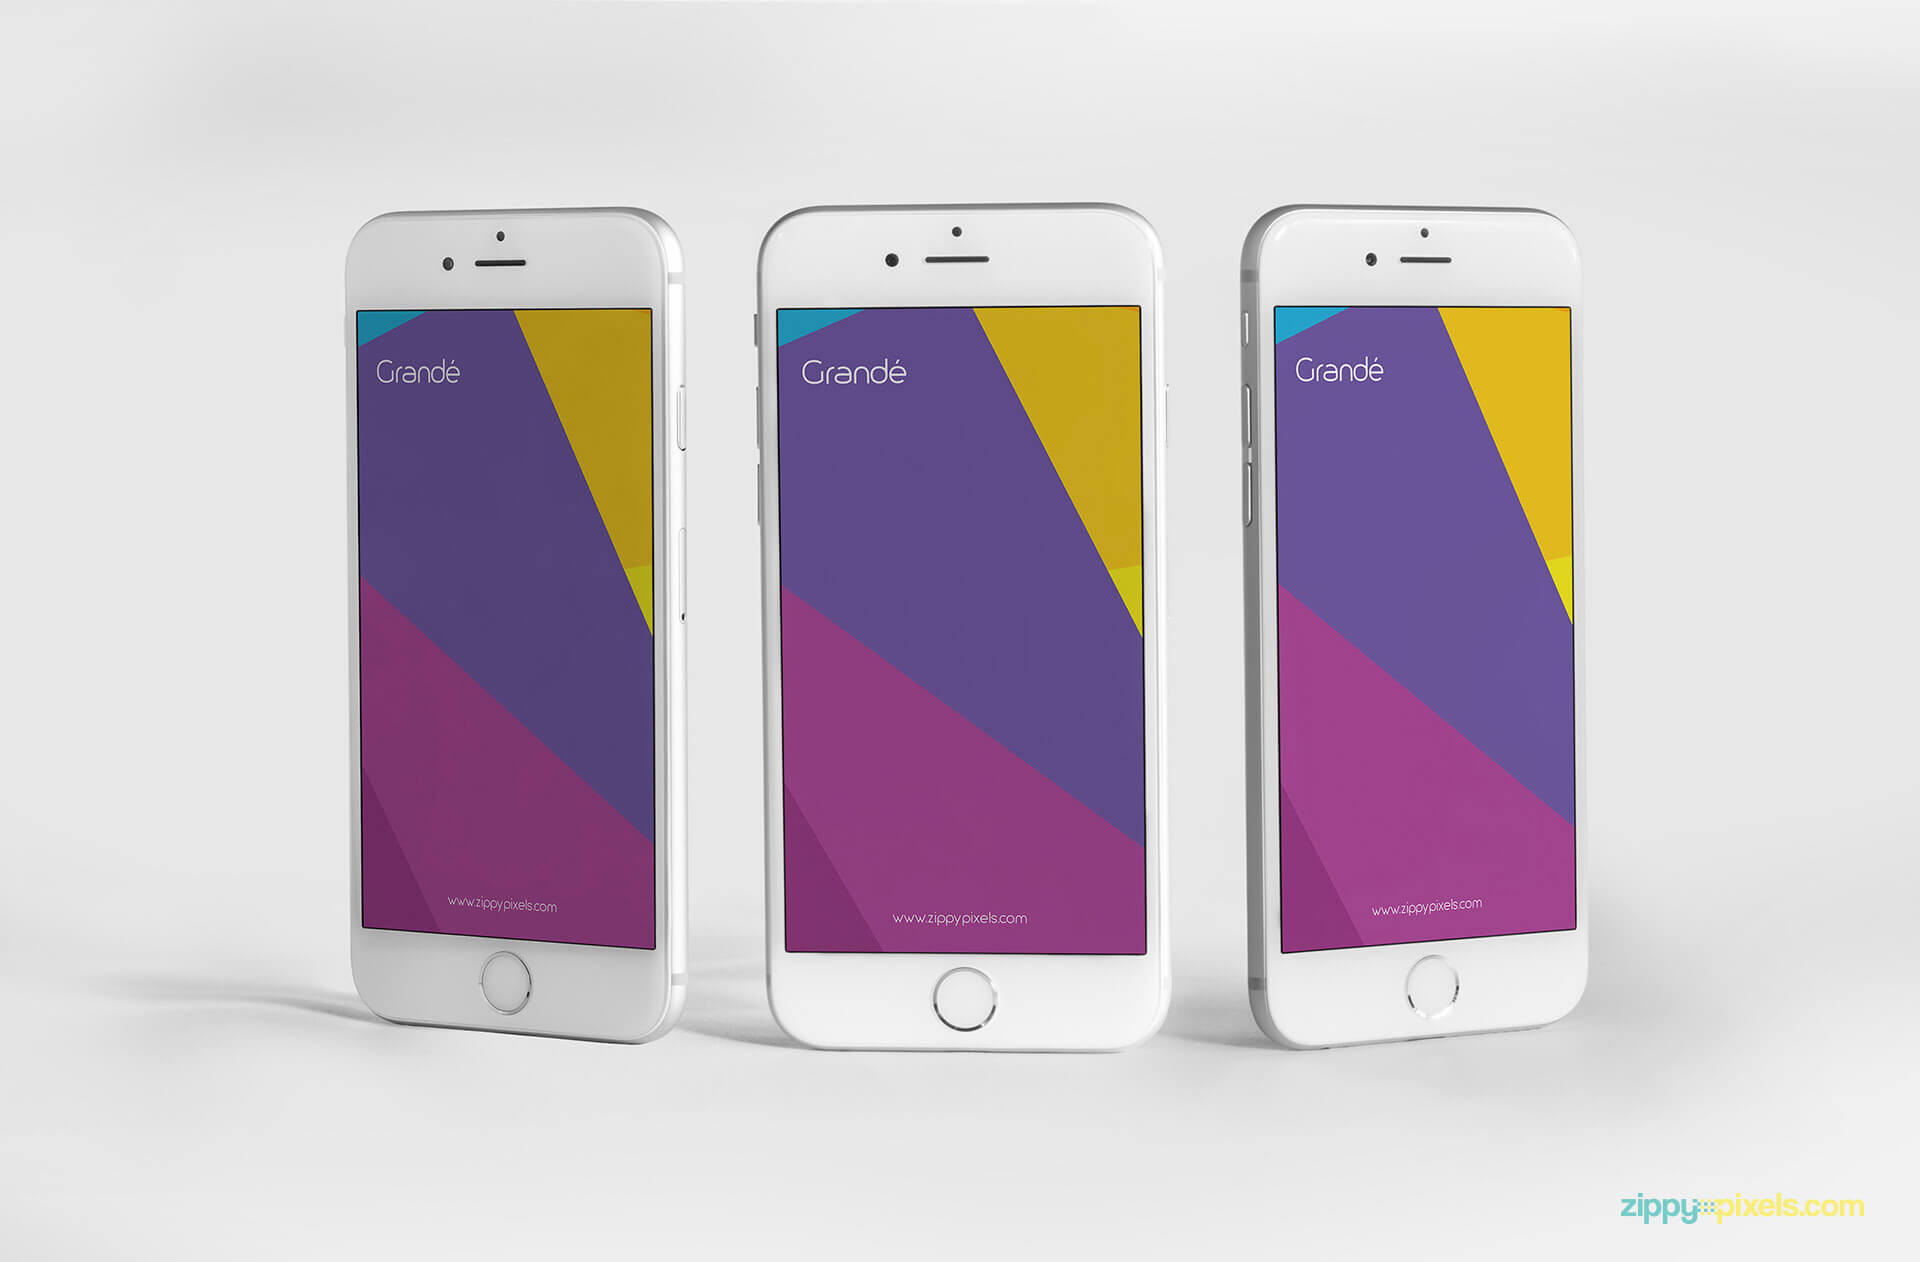 iphone 6s psd screen mockups for UI design presentations